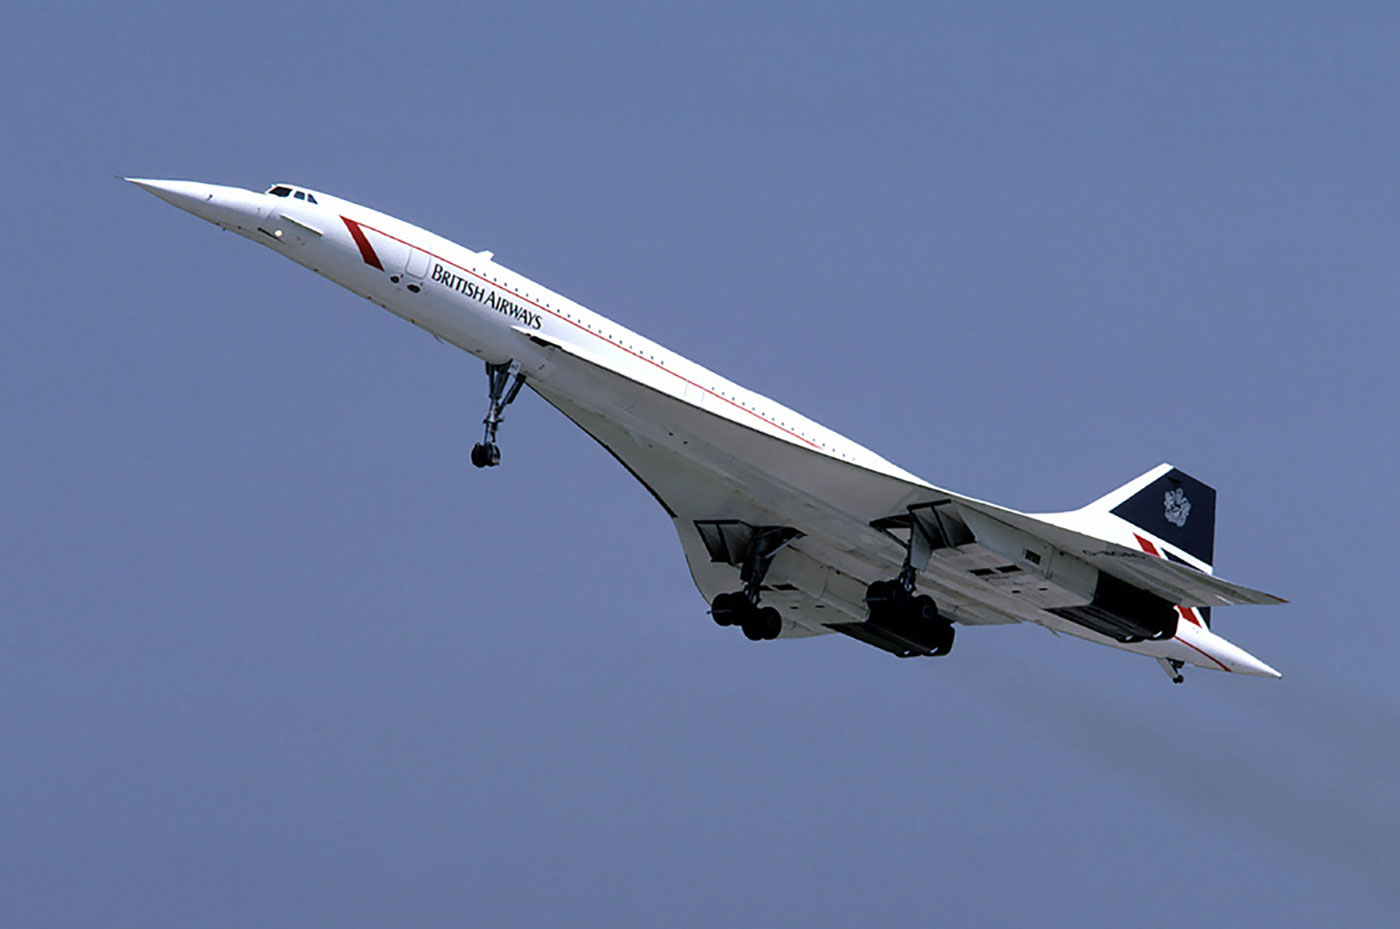 Concorde - An Alternative View